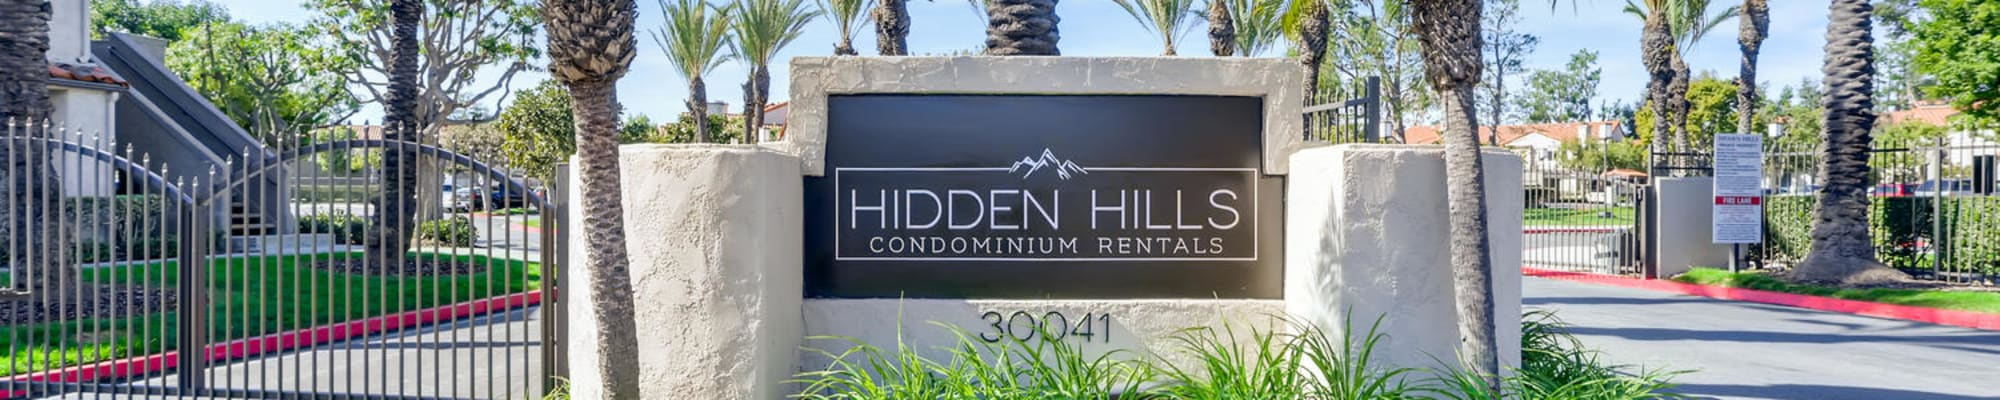 Photo gallery at Hidden Hills Condominium Rentals in Laguna Niguel, California